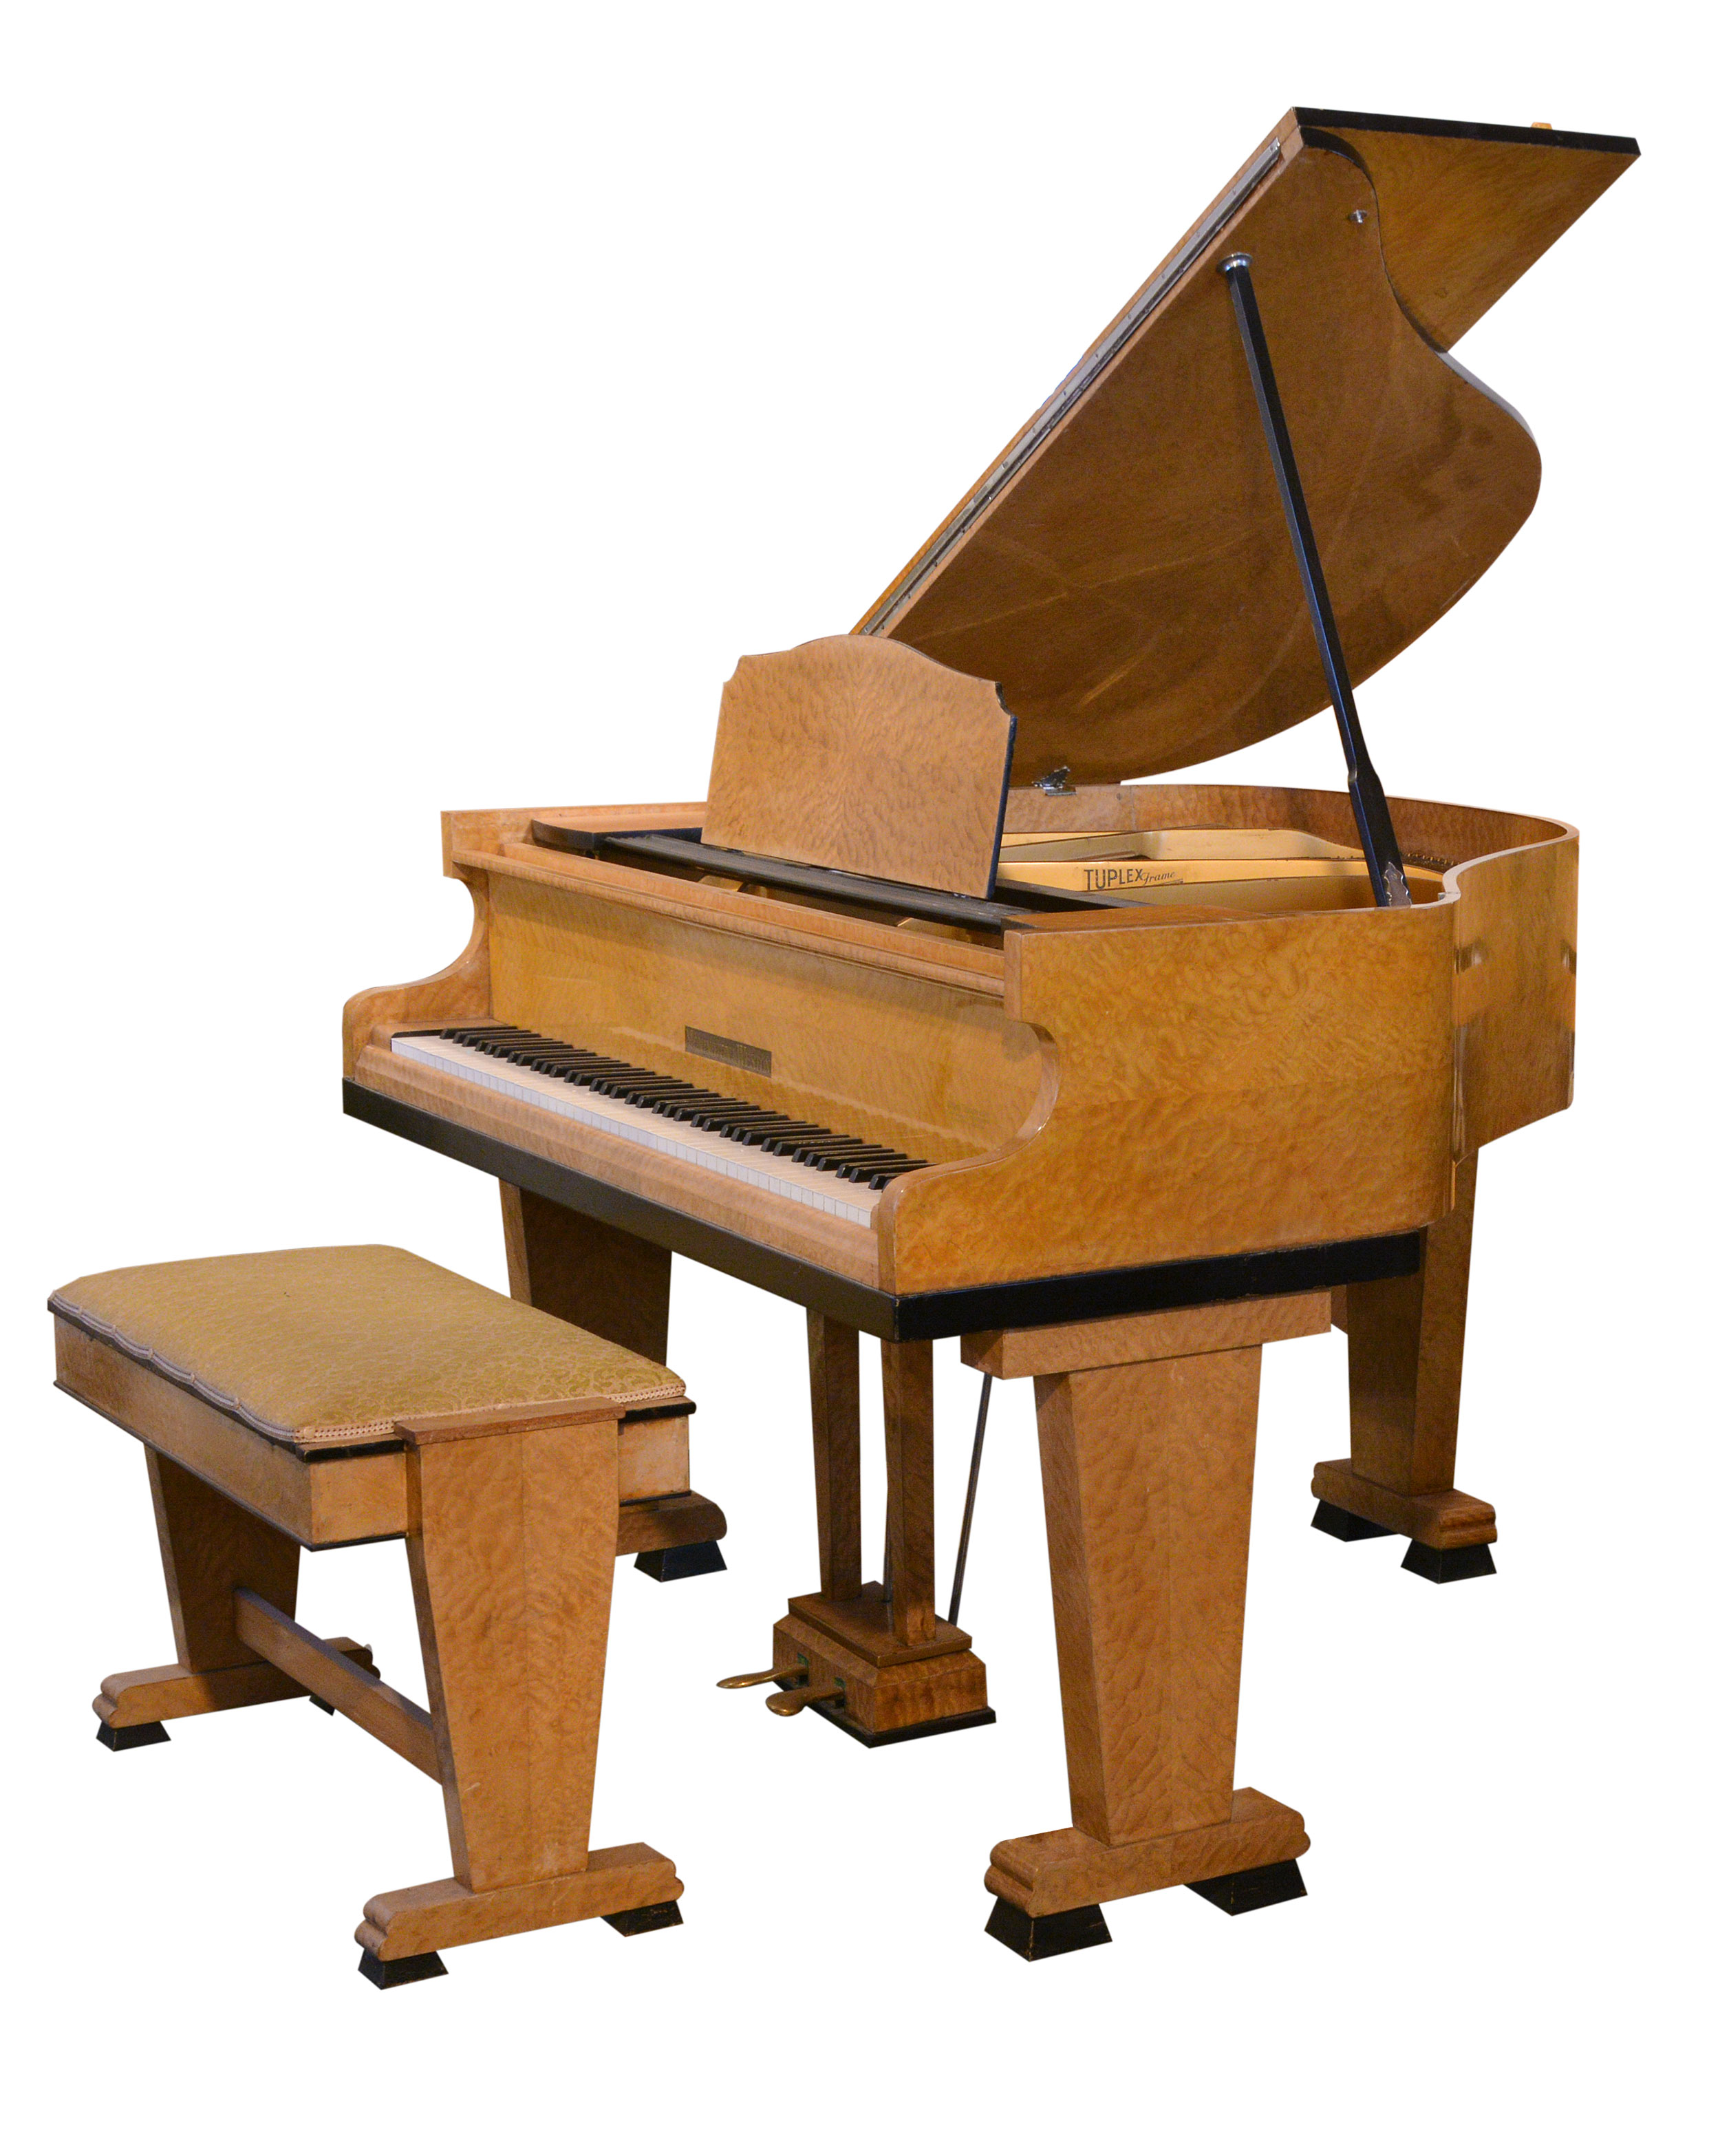 monington and weston art deco grand piano ca 1930 period piano company. Black Bedroom Furniture Sets. Home Design Ideas